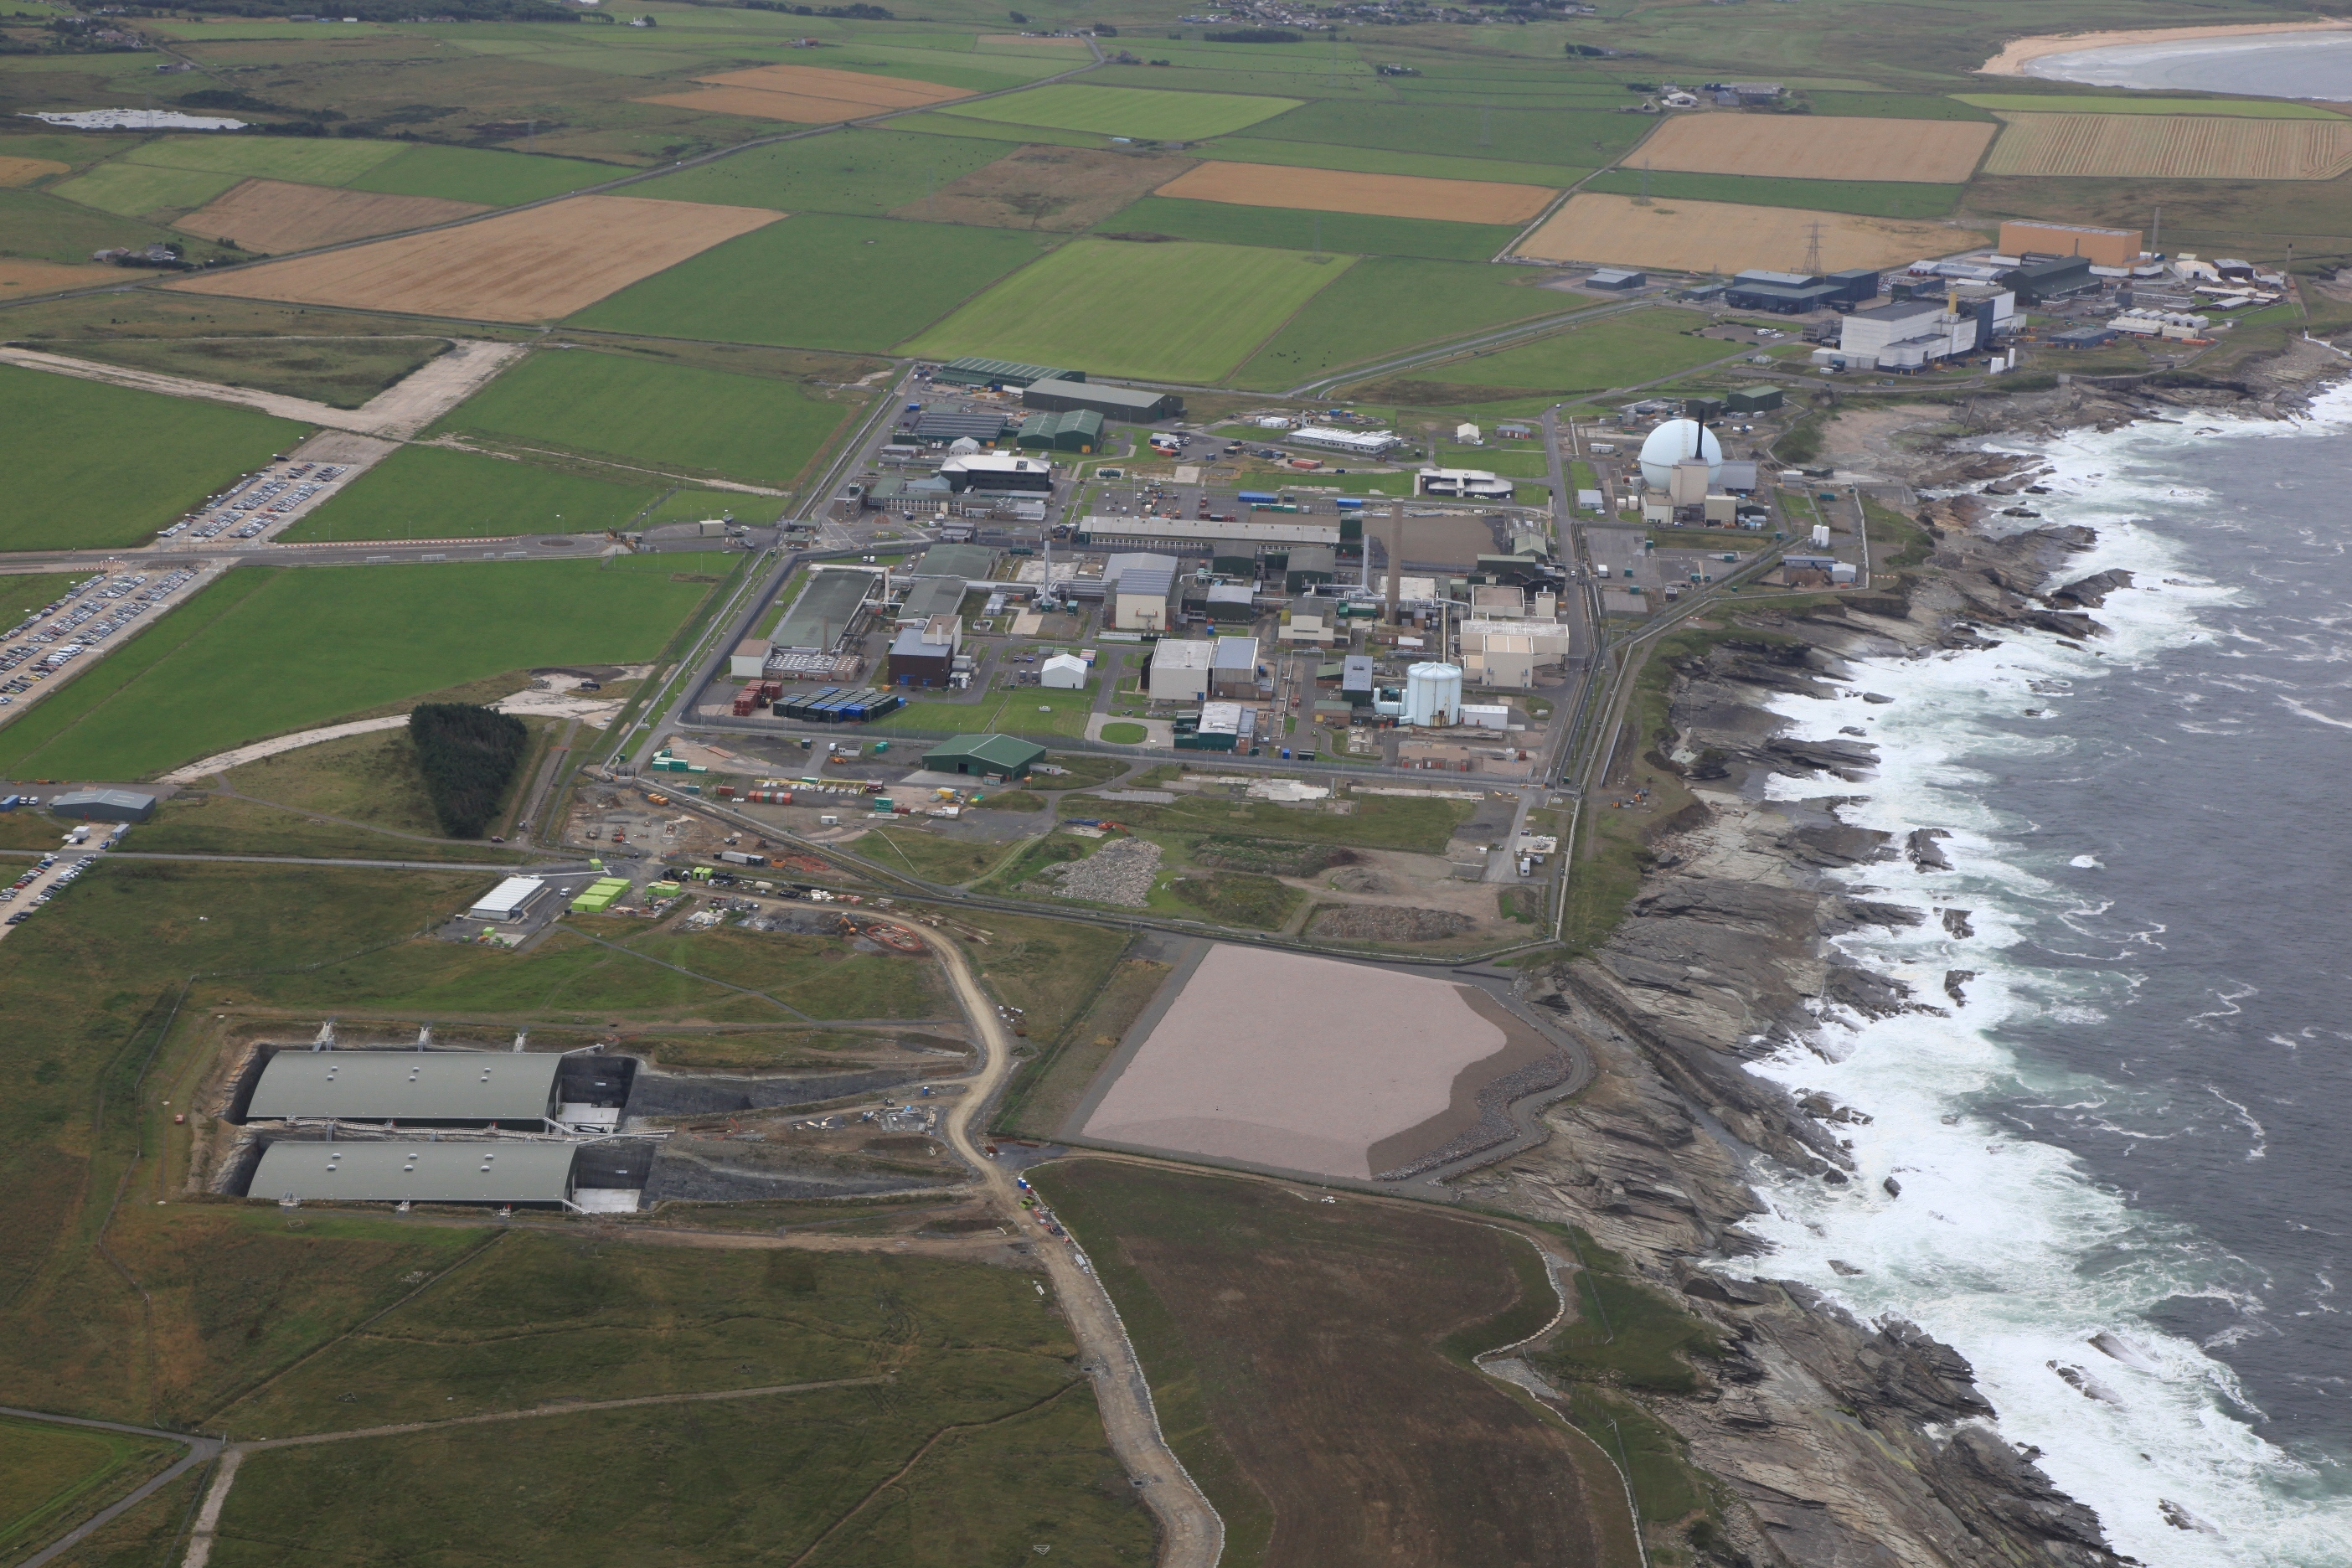 Aerial view of Dounreay